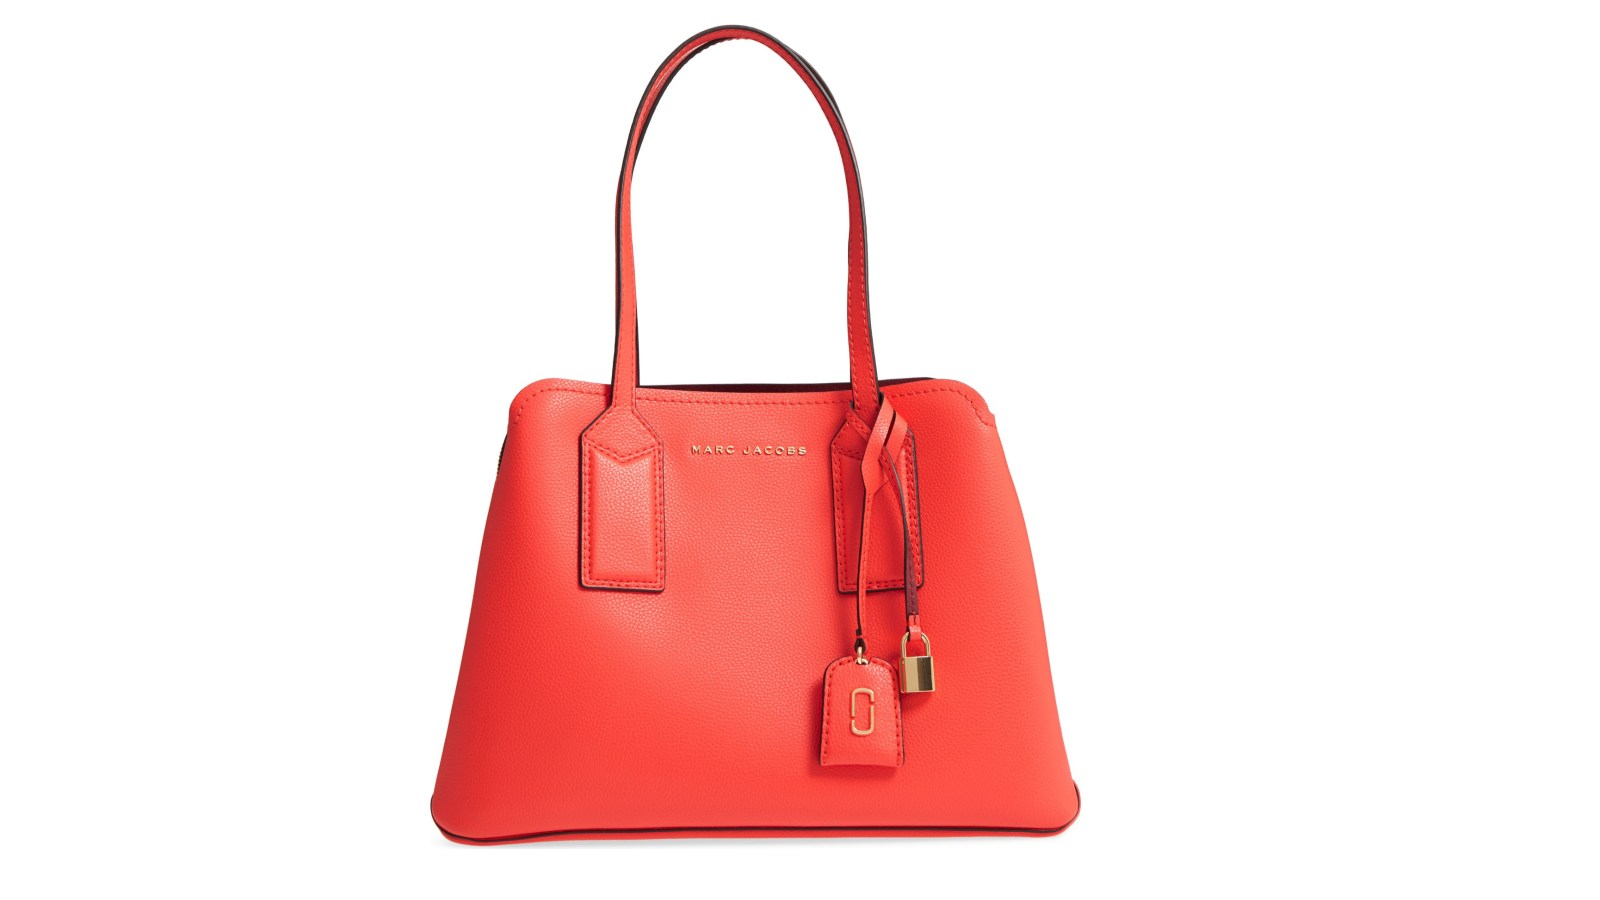 c48c4df44a88 This Marc Jacobs Tote Is the Perfect Bag for Work and It s 40 Percent Off!